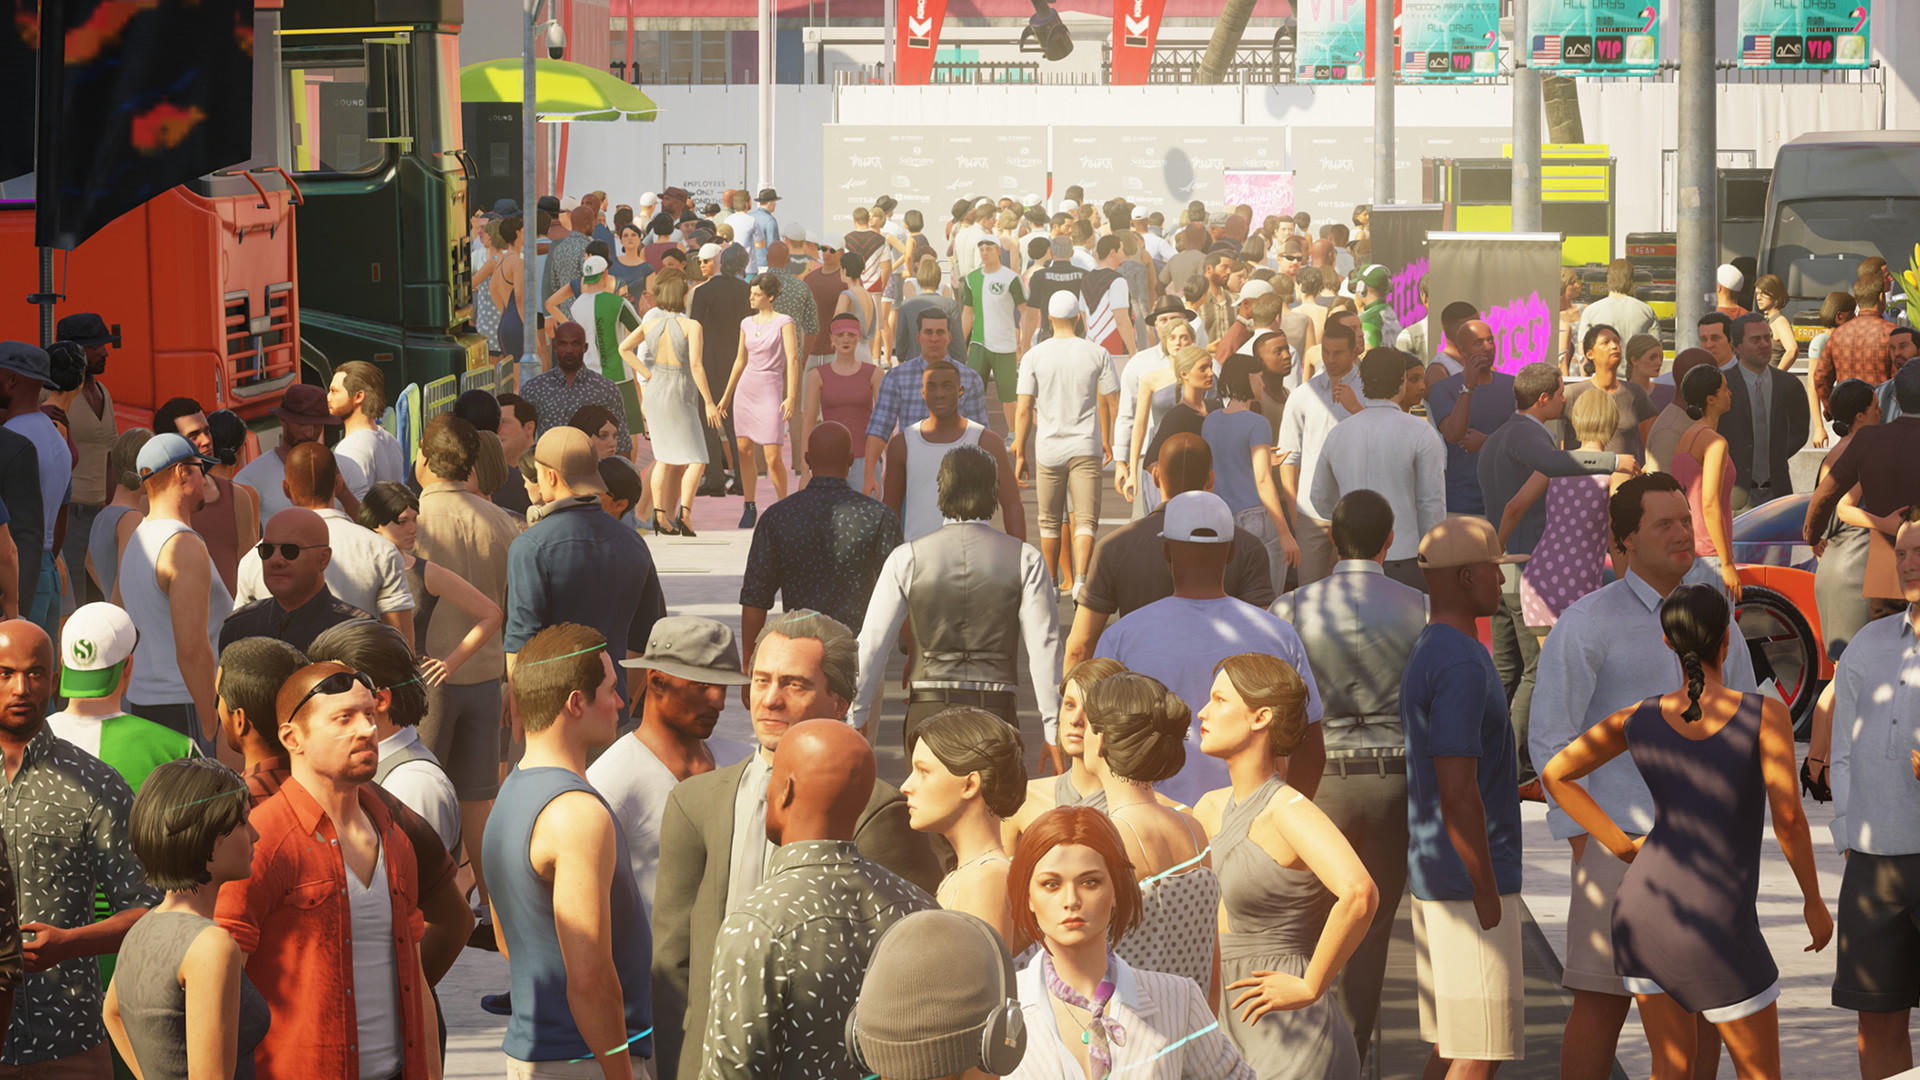 Hitman 2 crowd